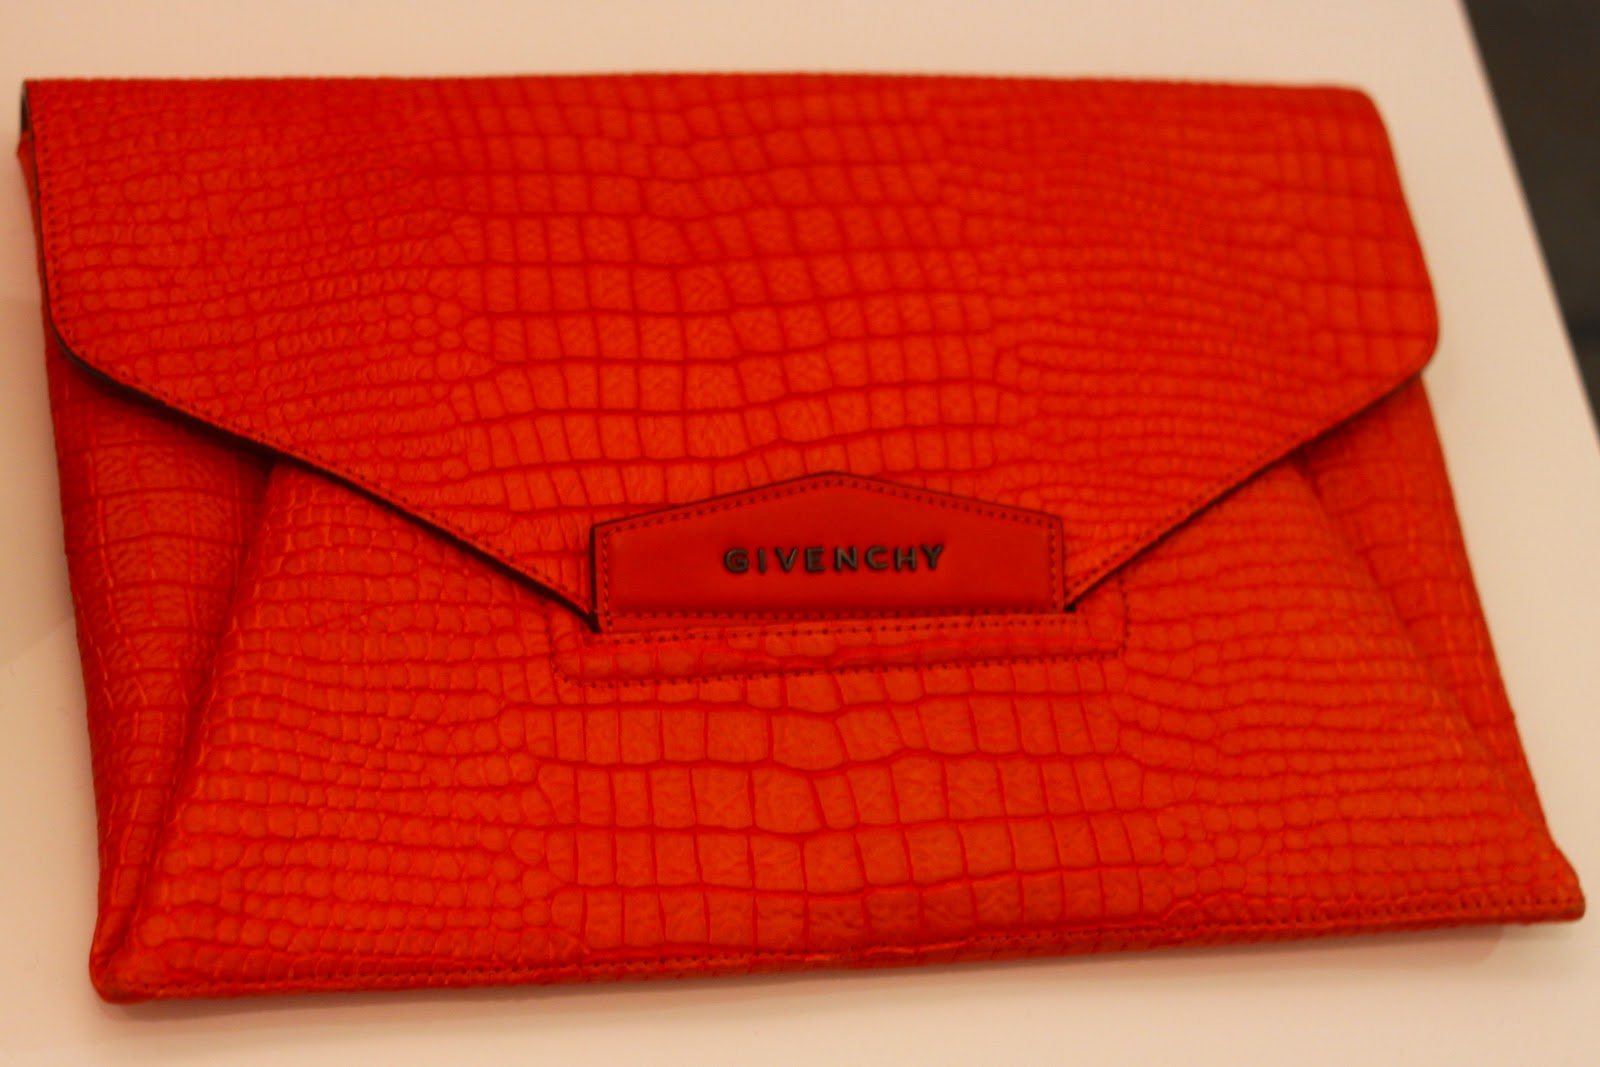 Givenchy orange snakeskin clutch bag